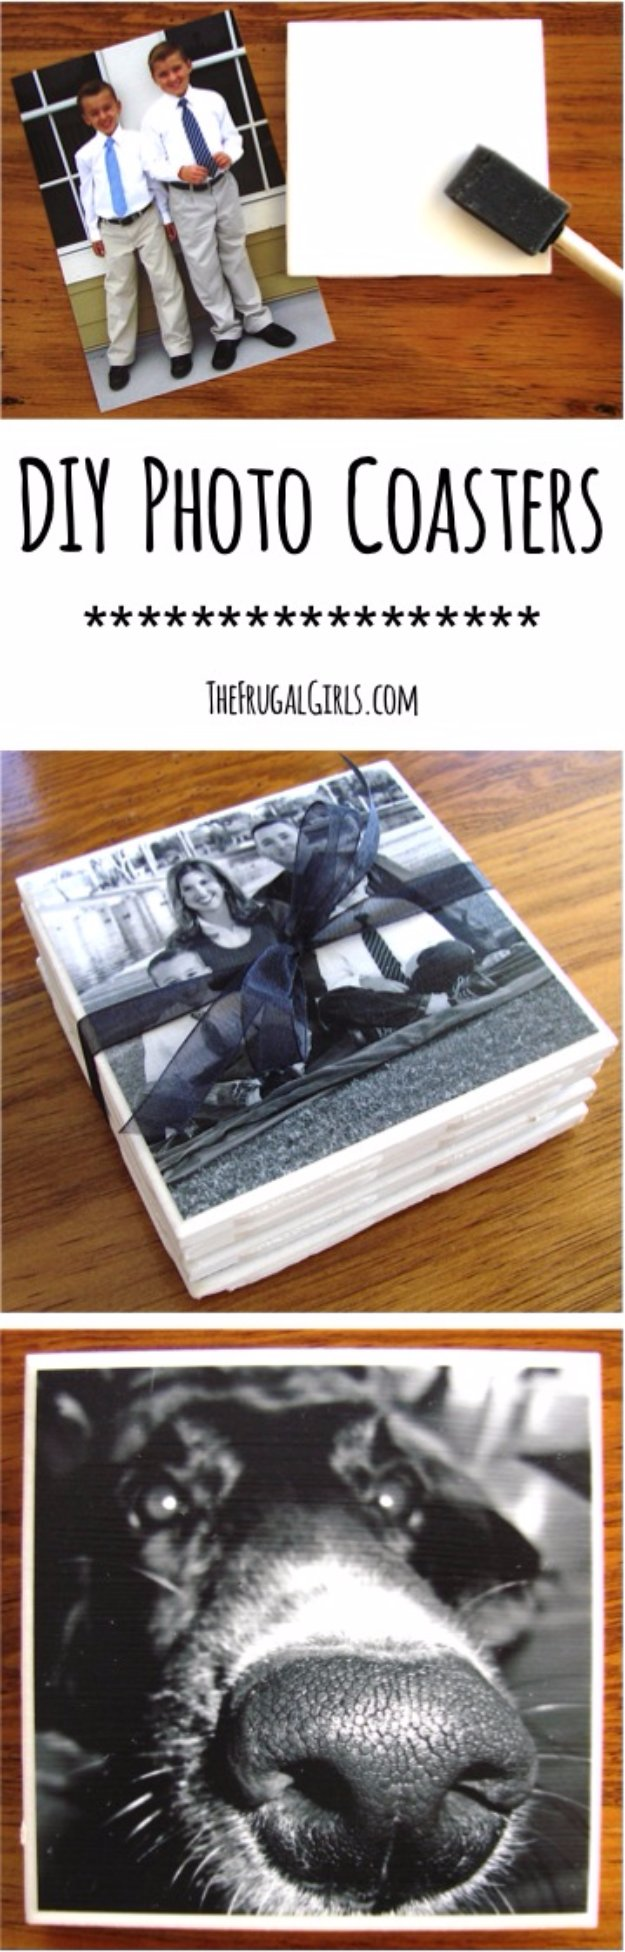 Easy Crafts To Make and Sell - Beautiful Photo Coasters - Cool Homemade Craft Projects You Can Sell On Etsy, at Craft Fairs, Online and in Stores. Quick and Cheap DIY Ideas that Adults and Even Teens #craftstosell #diyideas #crafts